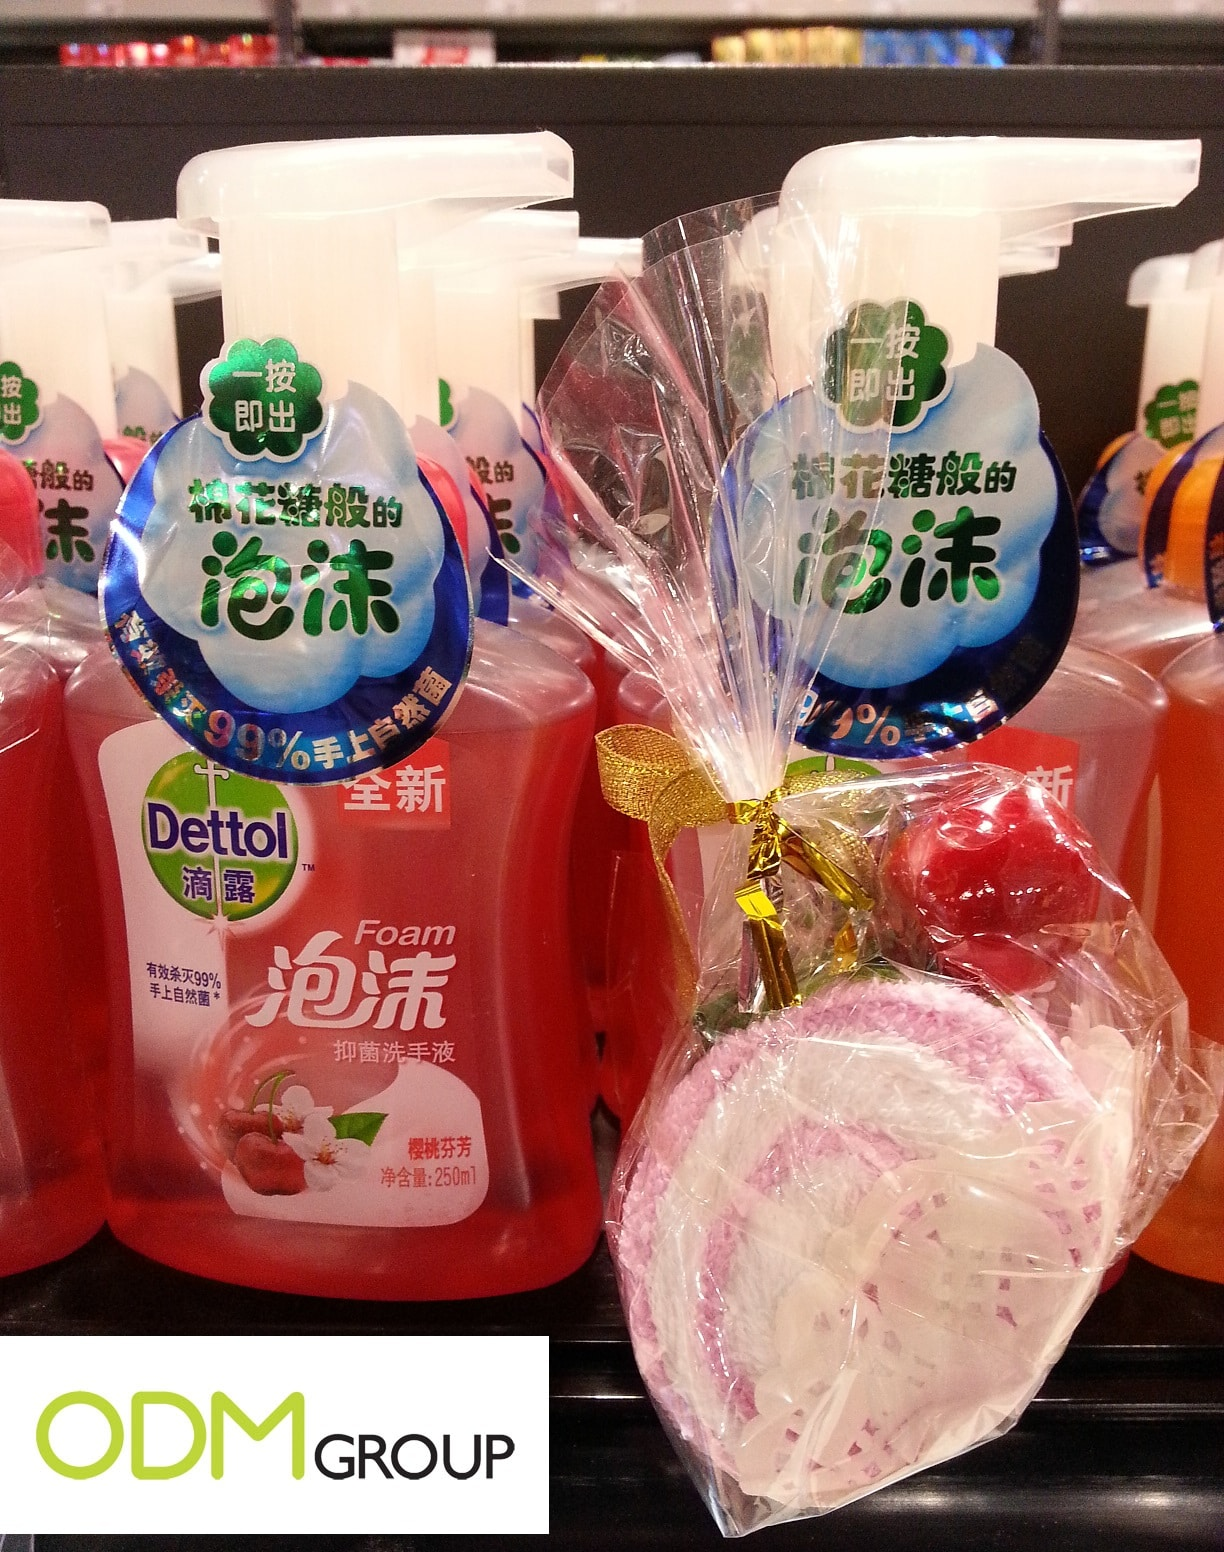 Get Squeaky Clean with Dettol's On Pack Promo